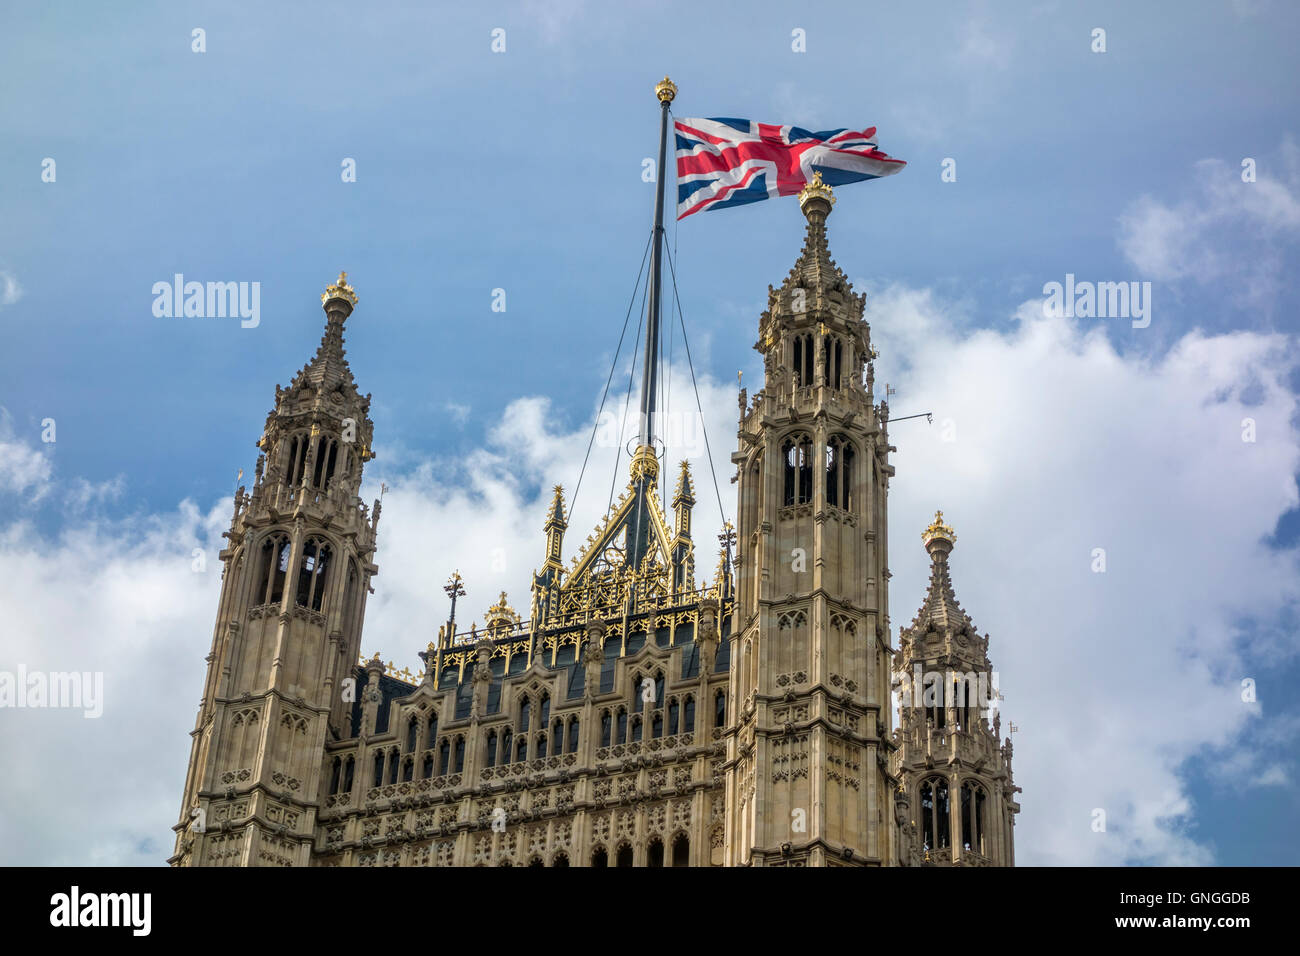 Union Flag flying over Victoria Tower, Houses of Parliament. London, UK - Stock Image